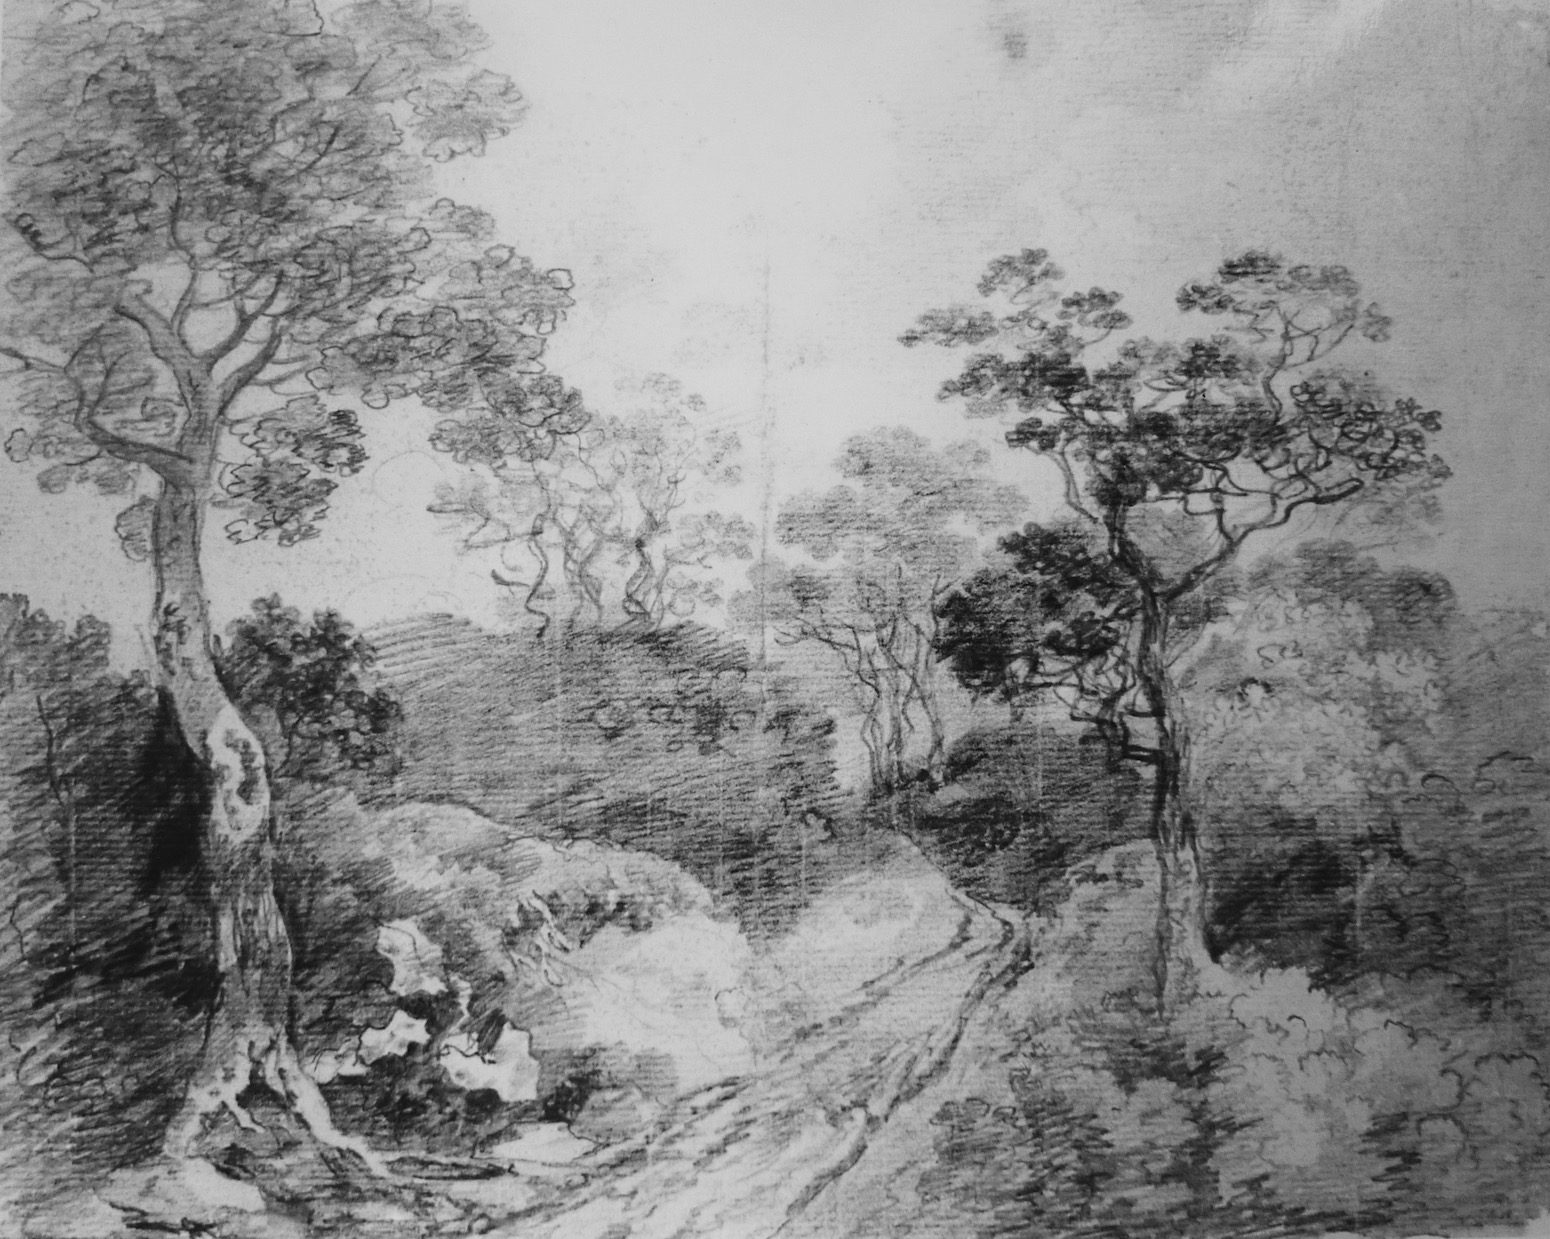 Thomas Gainsborough,  Landscape with Wooded Path , 1749–50. Pencil on paper, 21.8 x 26.9 cm. Private Collection.